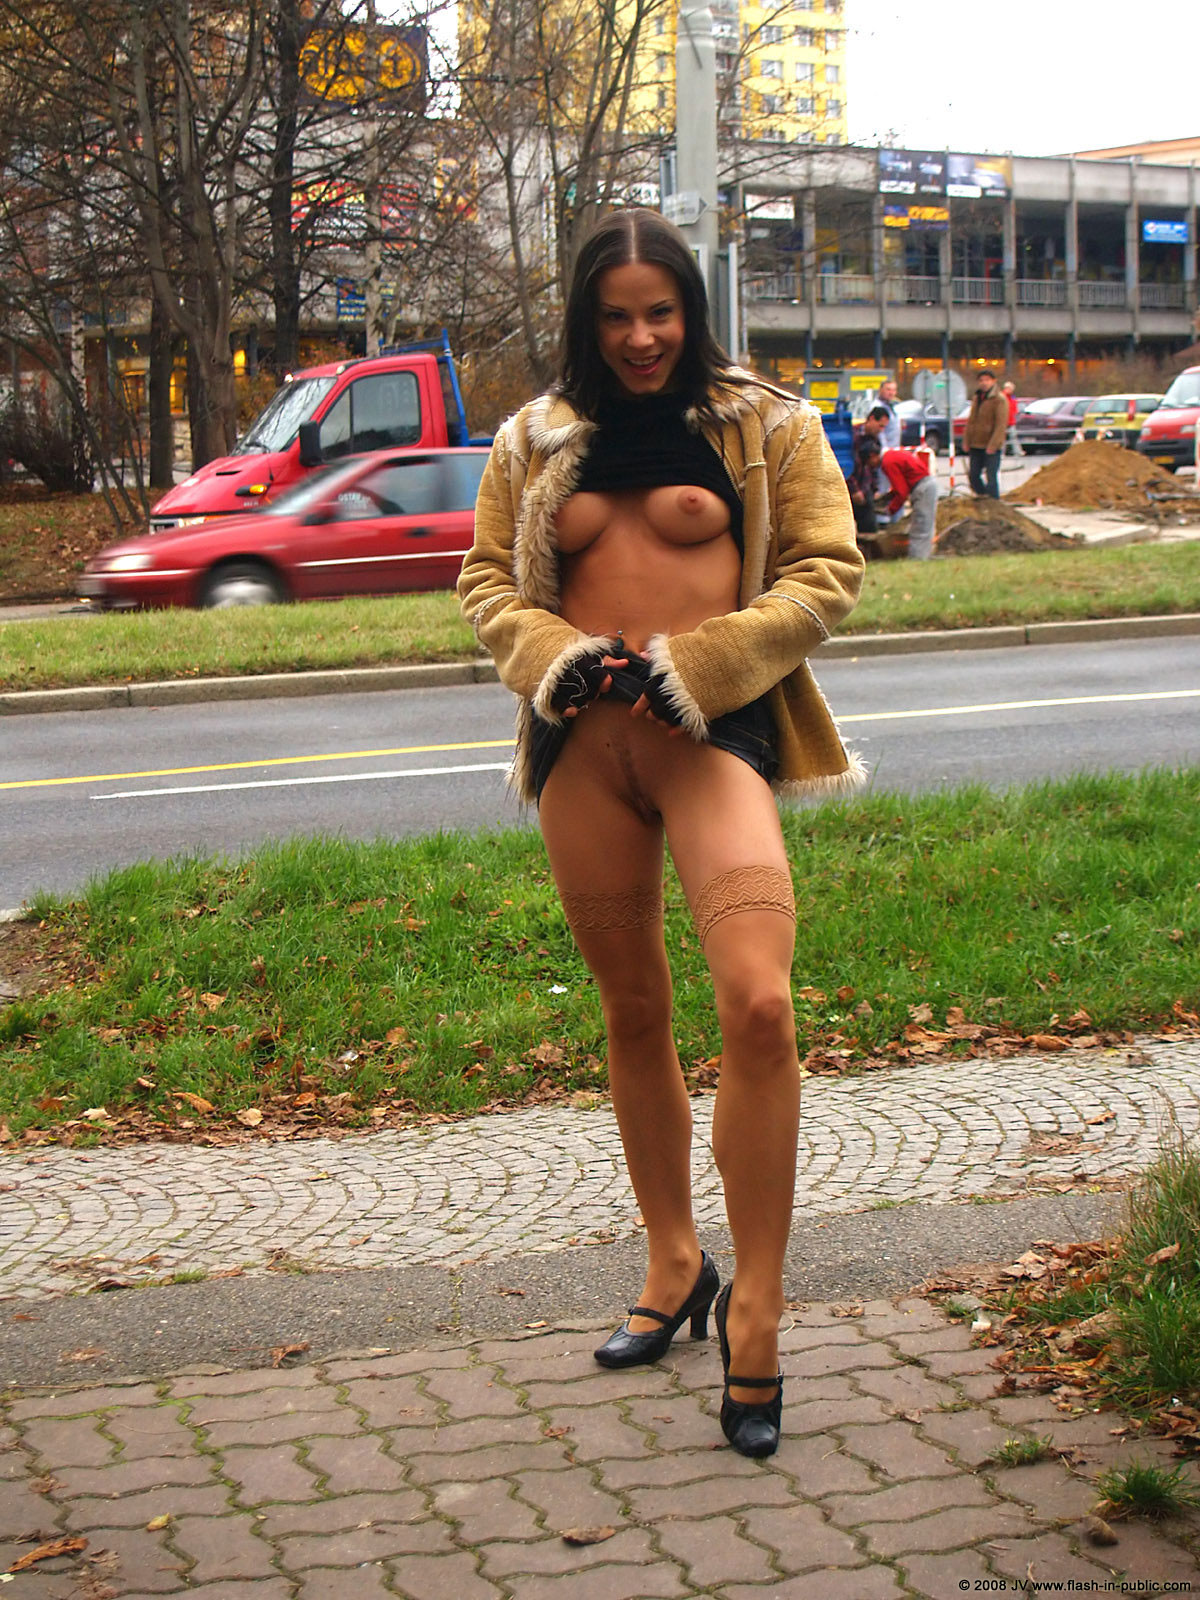 alexandra-g-bottomless-stockings-flash-in-public-15